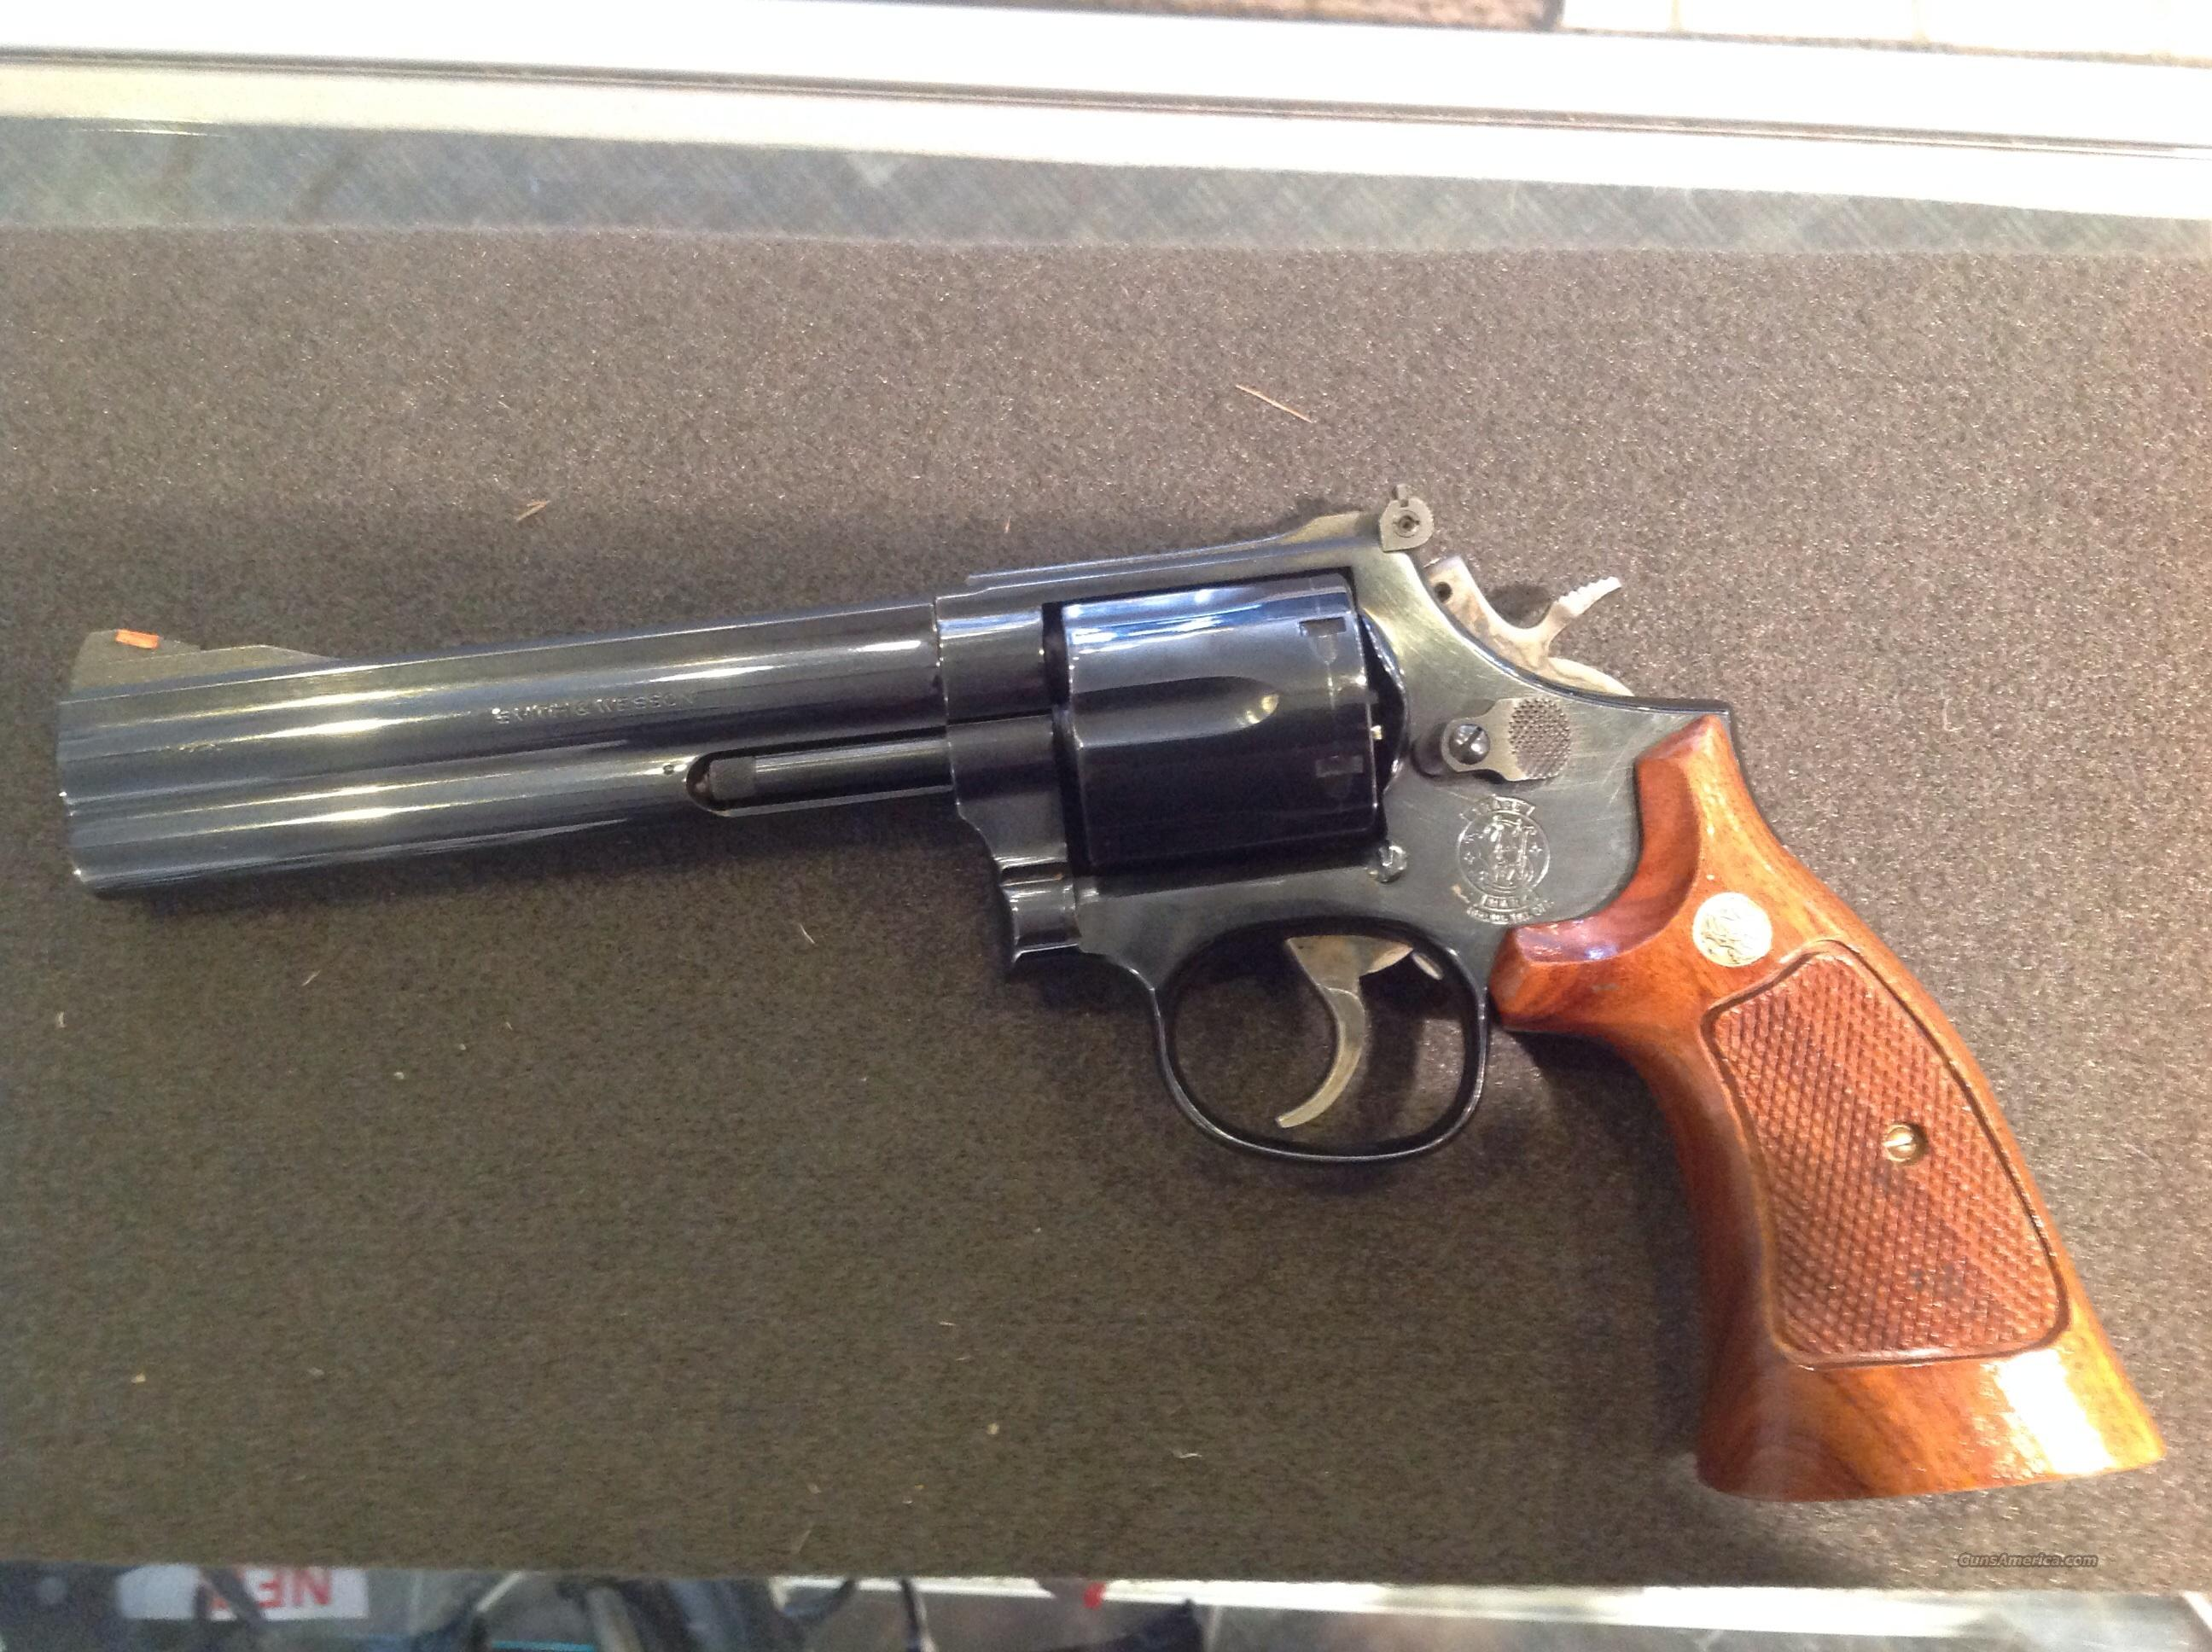 Smith and Wesson 586-3 .357 mag revolver  Guns > Pistols > Smith & Wesson Revolvers > Full Frame Revolver